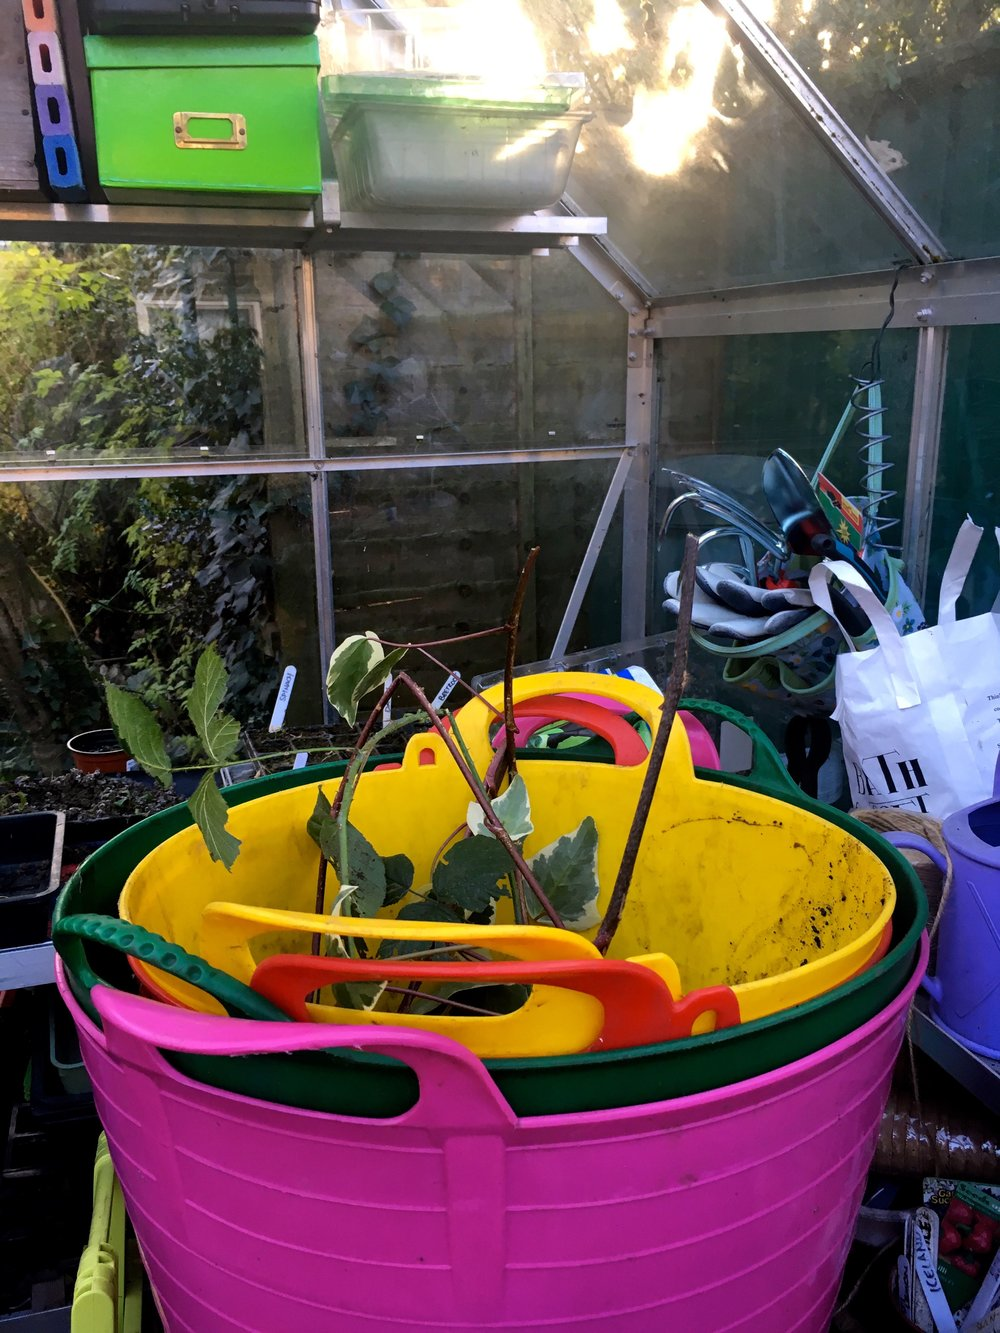 trugs piled up in the greenhouse